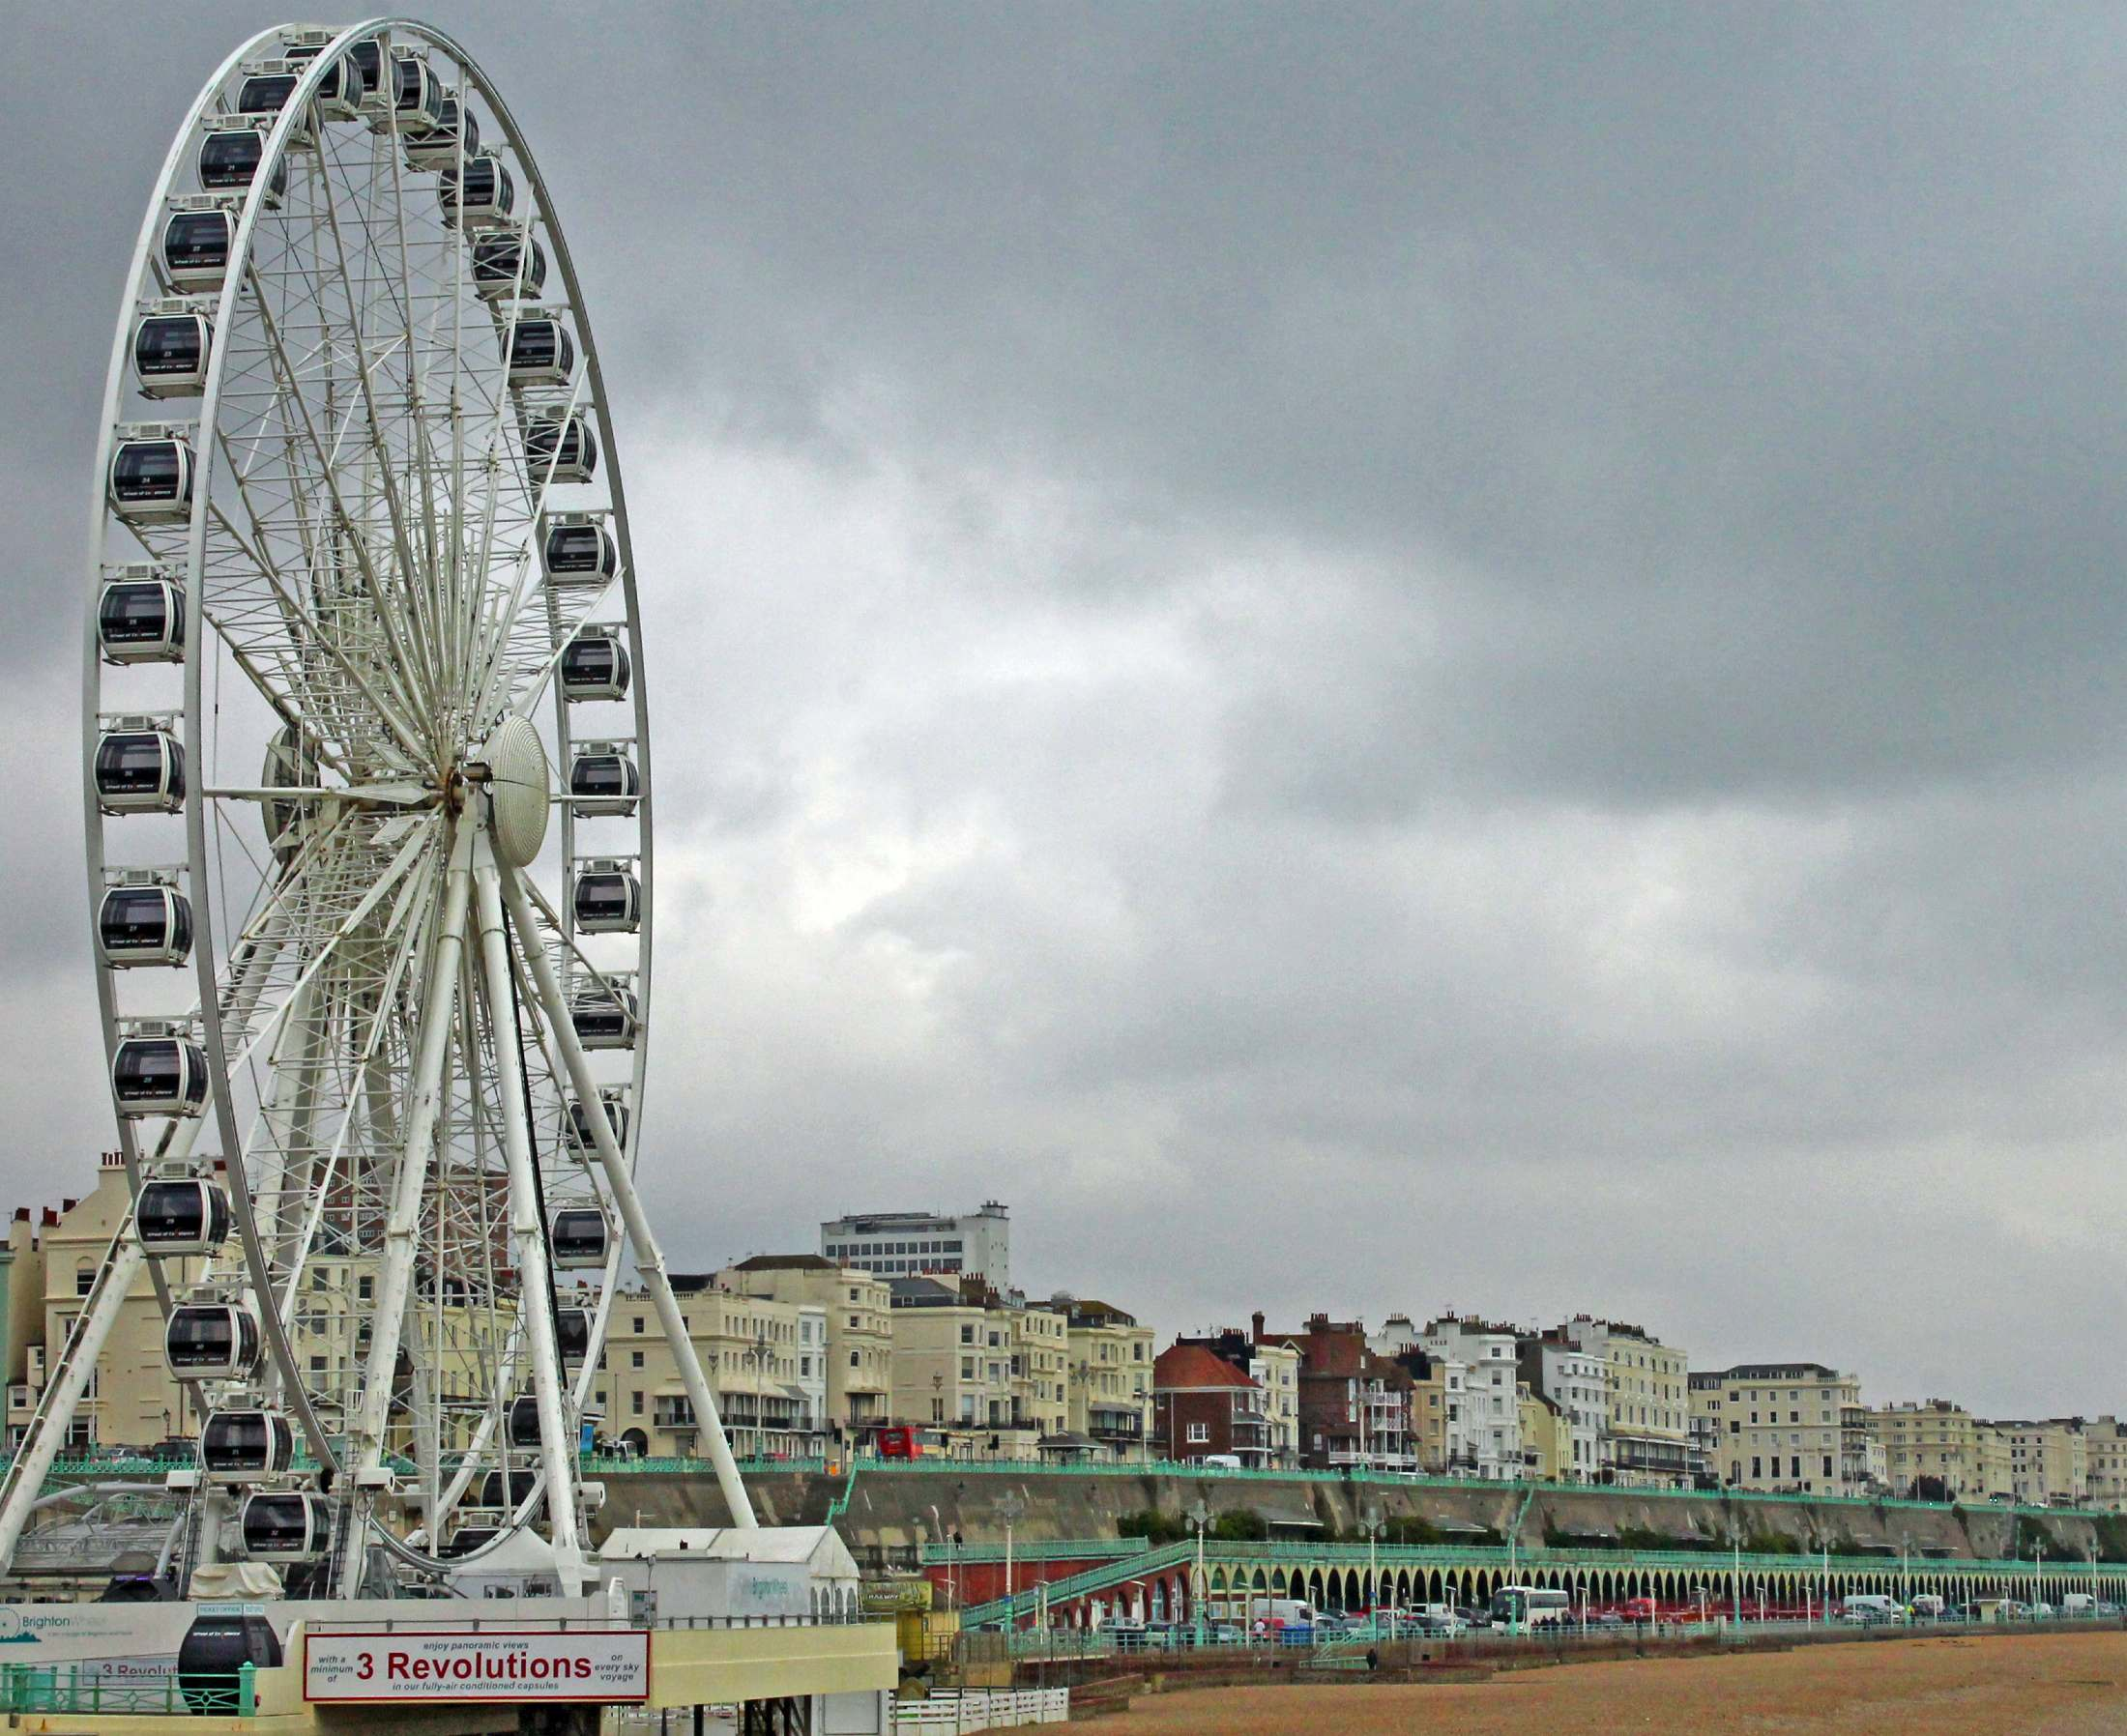 Brighton Wheel - Focal Journey